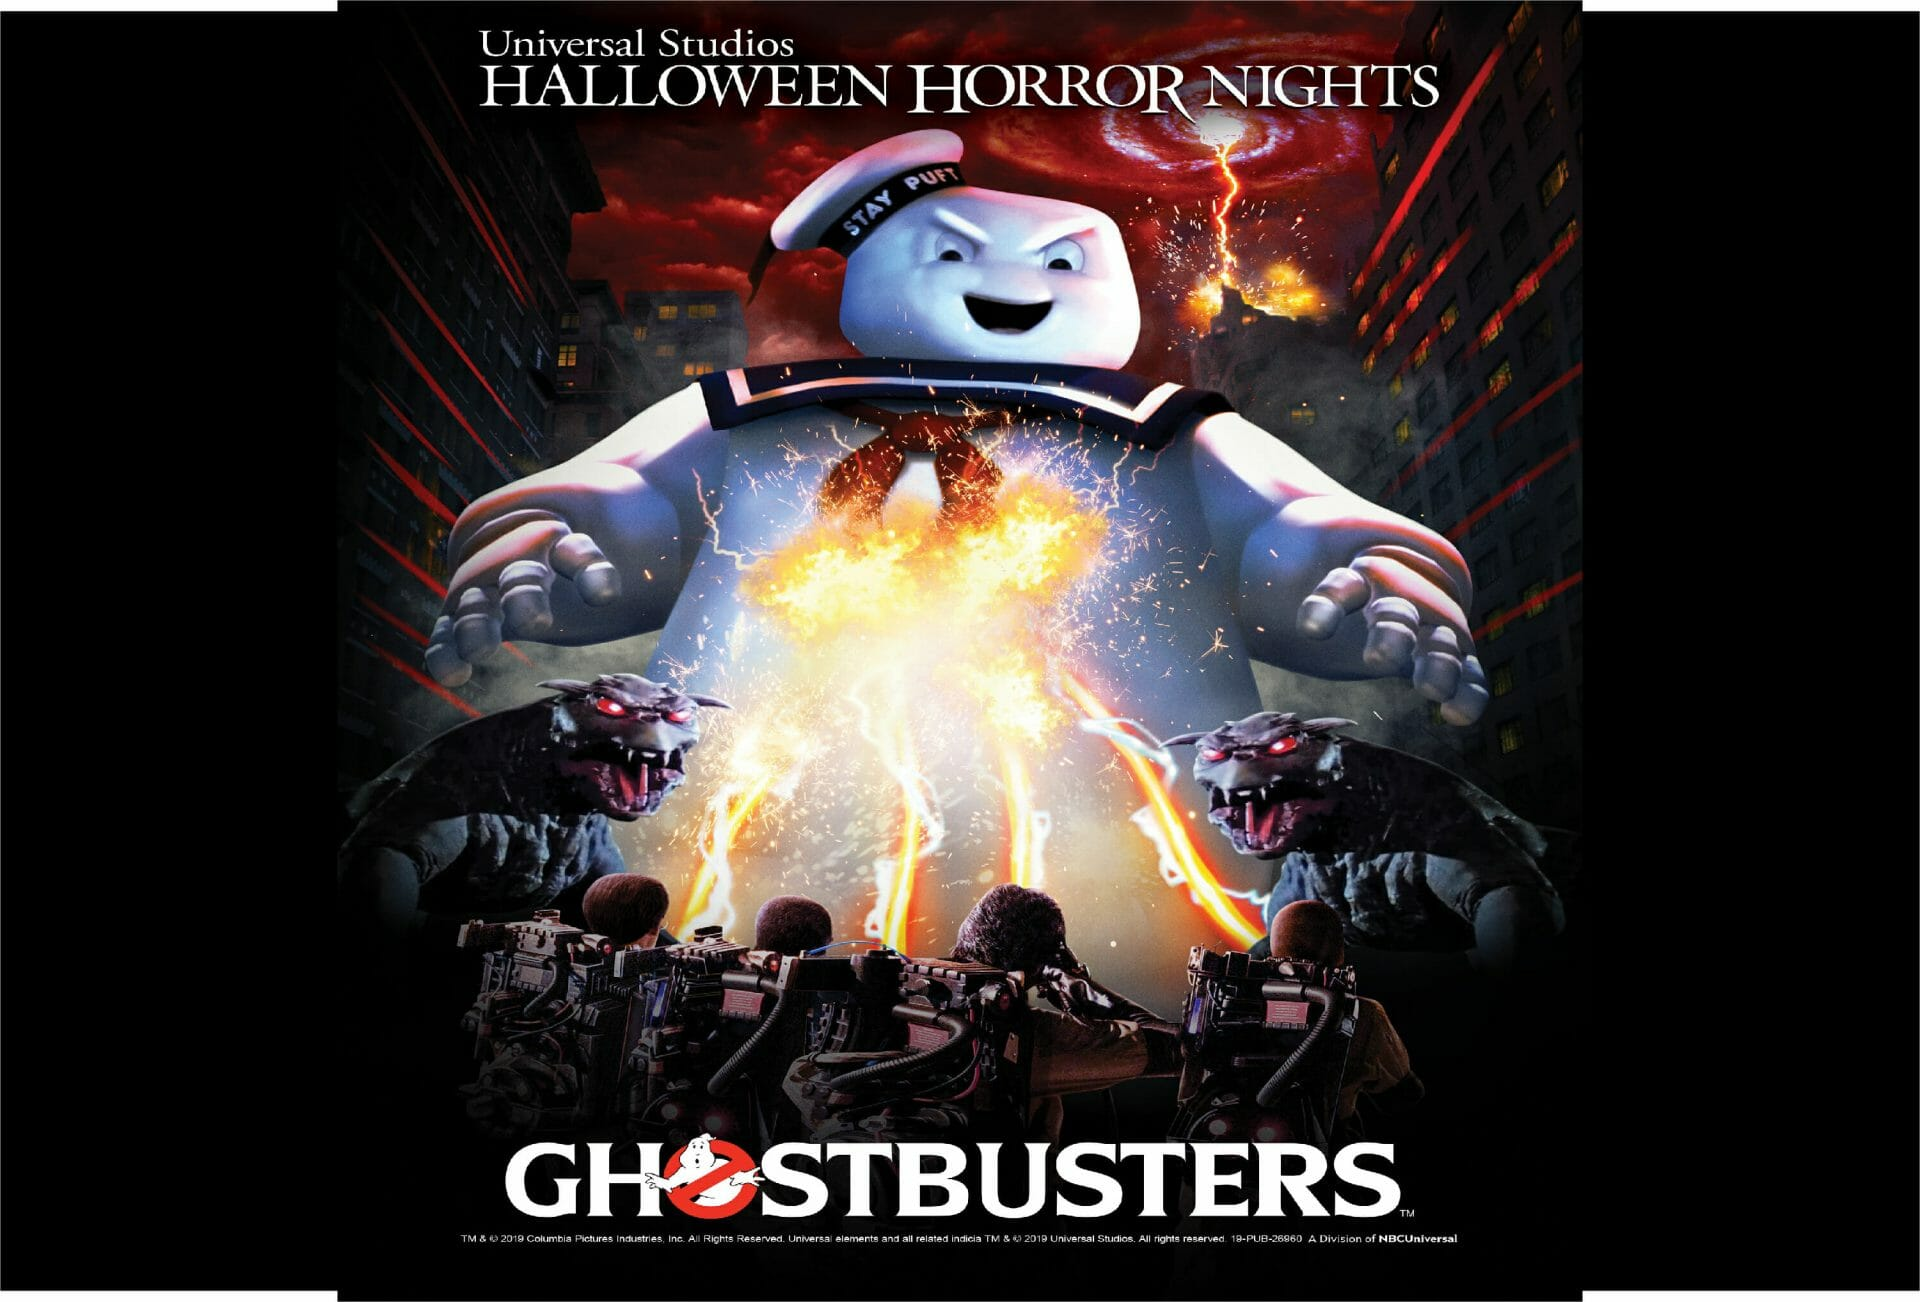 Halloween Horror Nights 2019 Poster.Universal Studios Welcomes Ghostbusters For The First Time